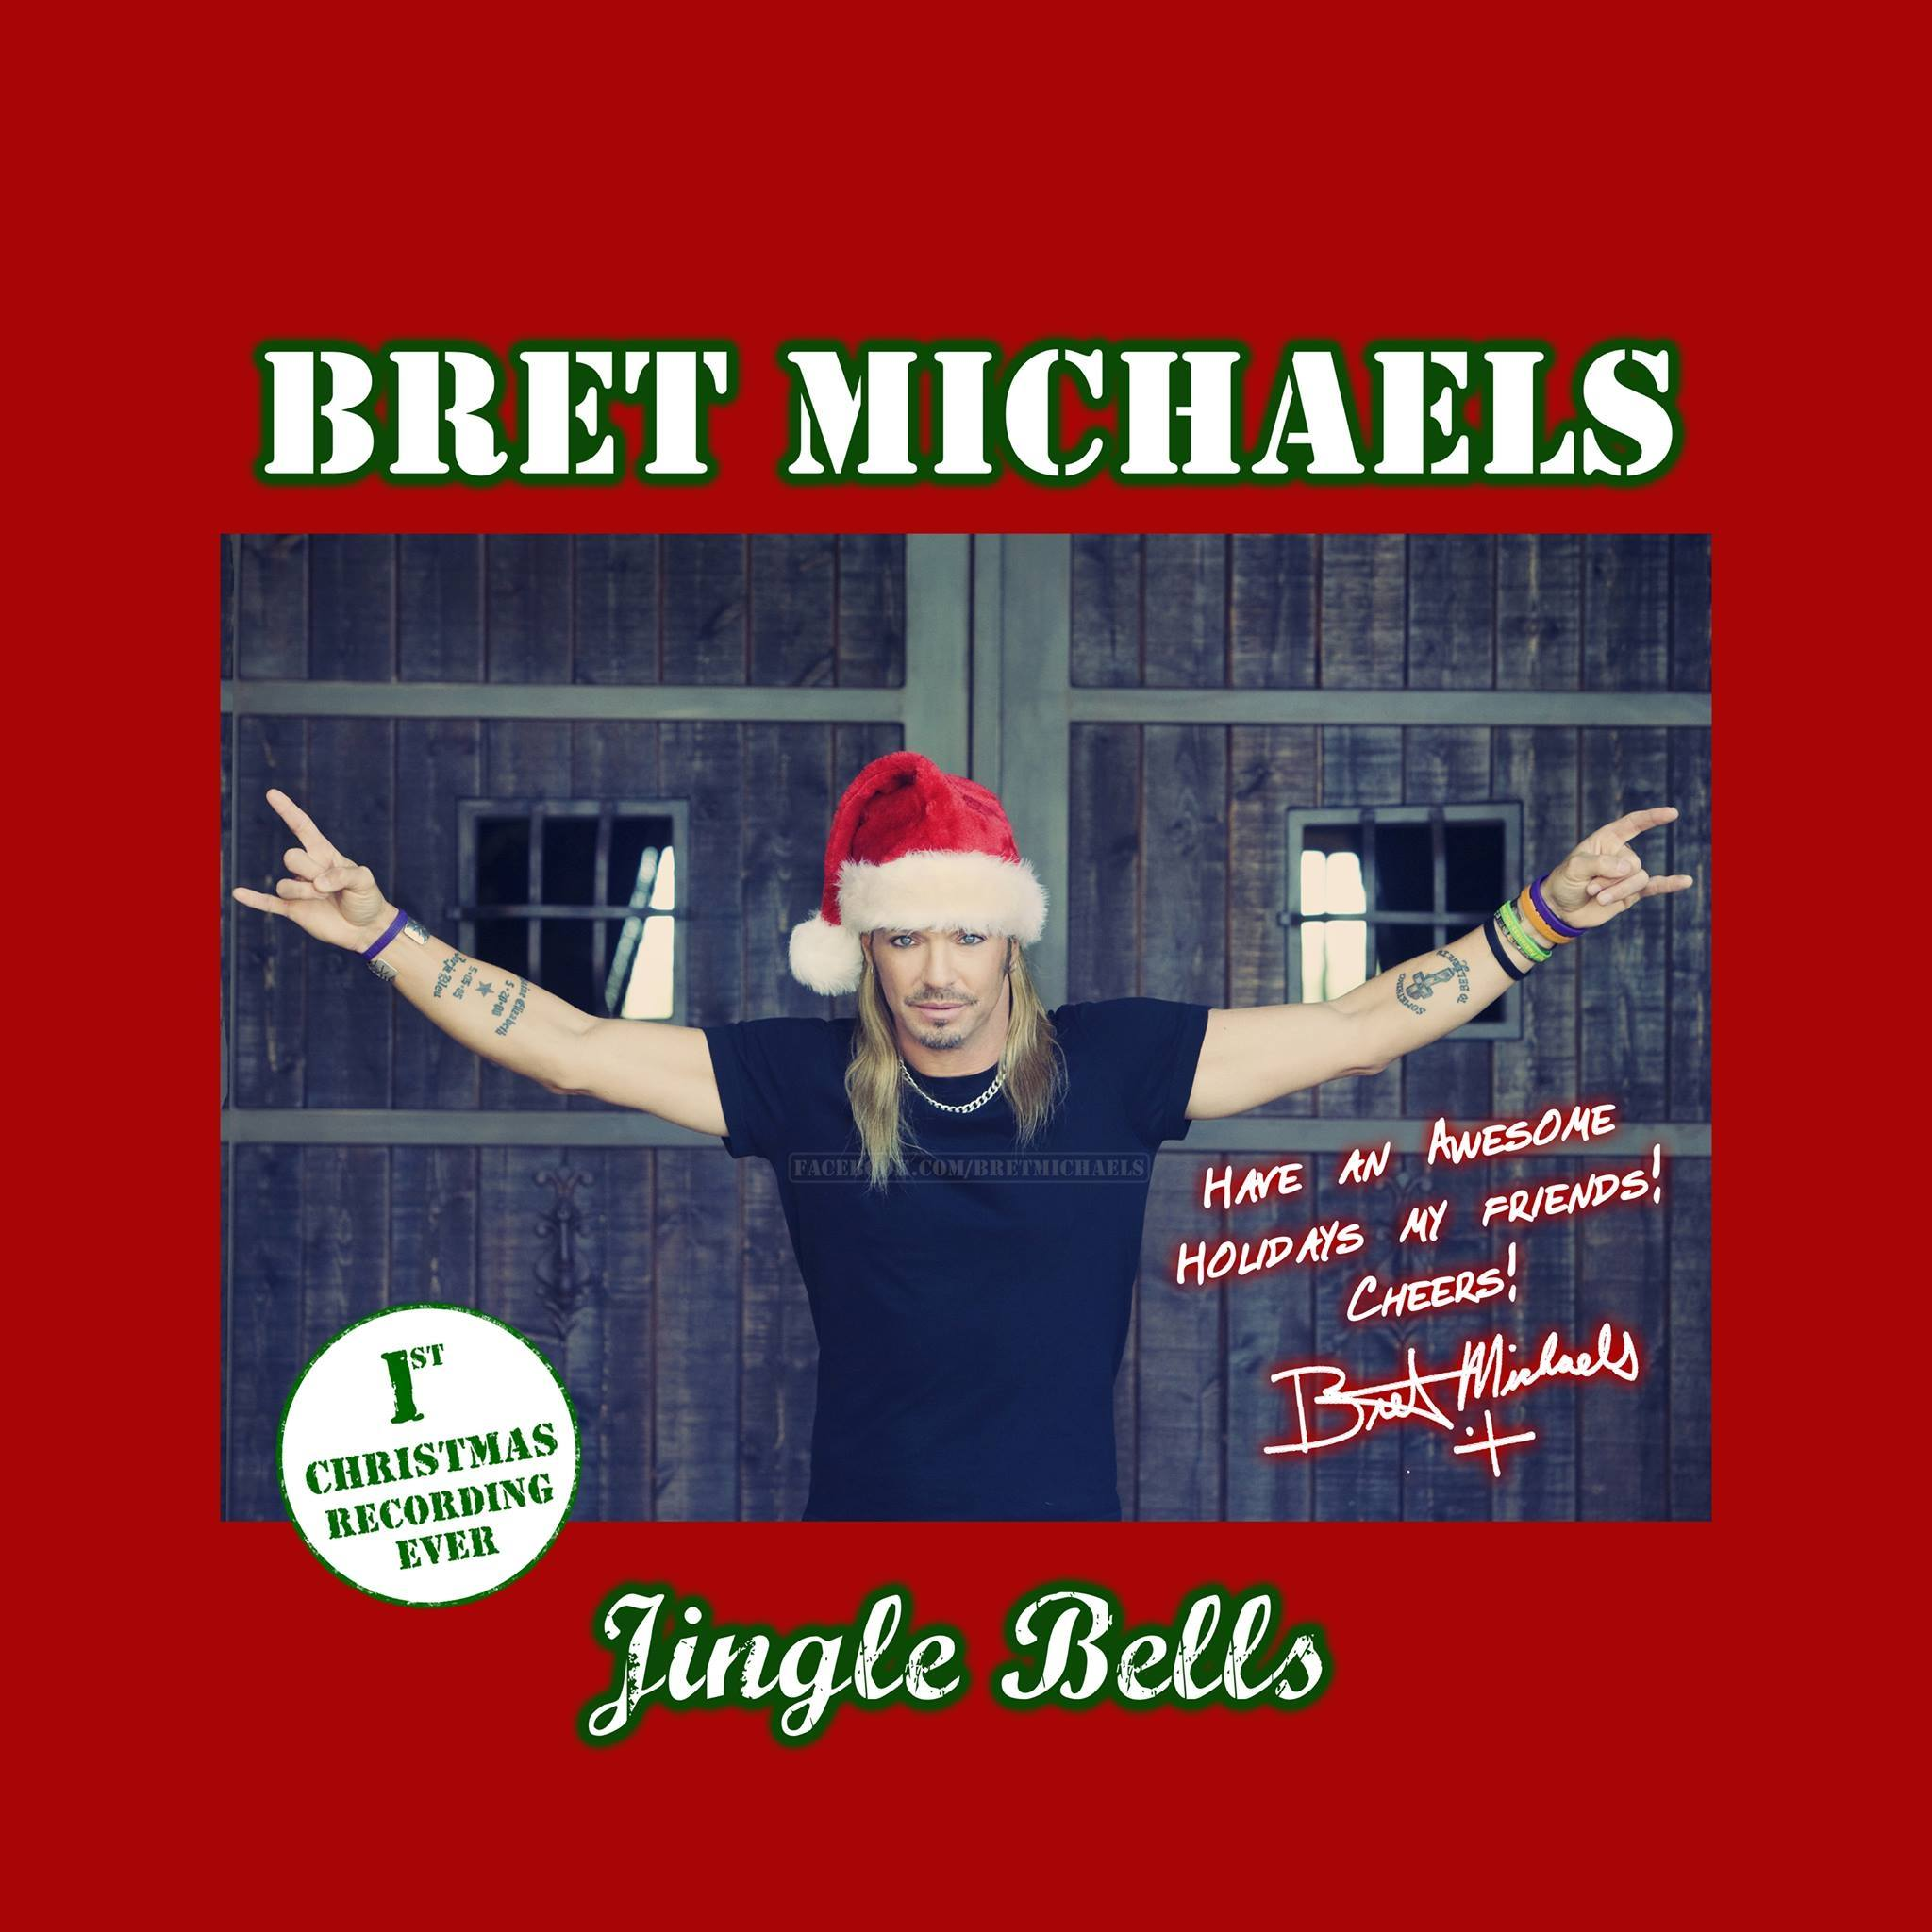 jingle_bells_bret_michaels_1510856741.jpg